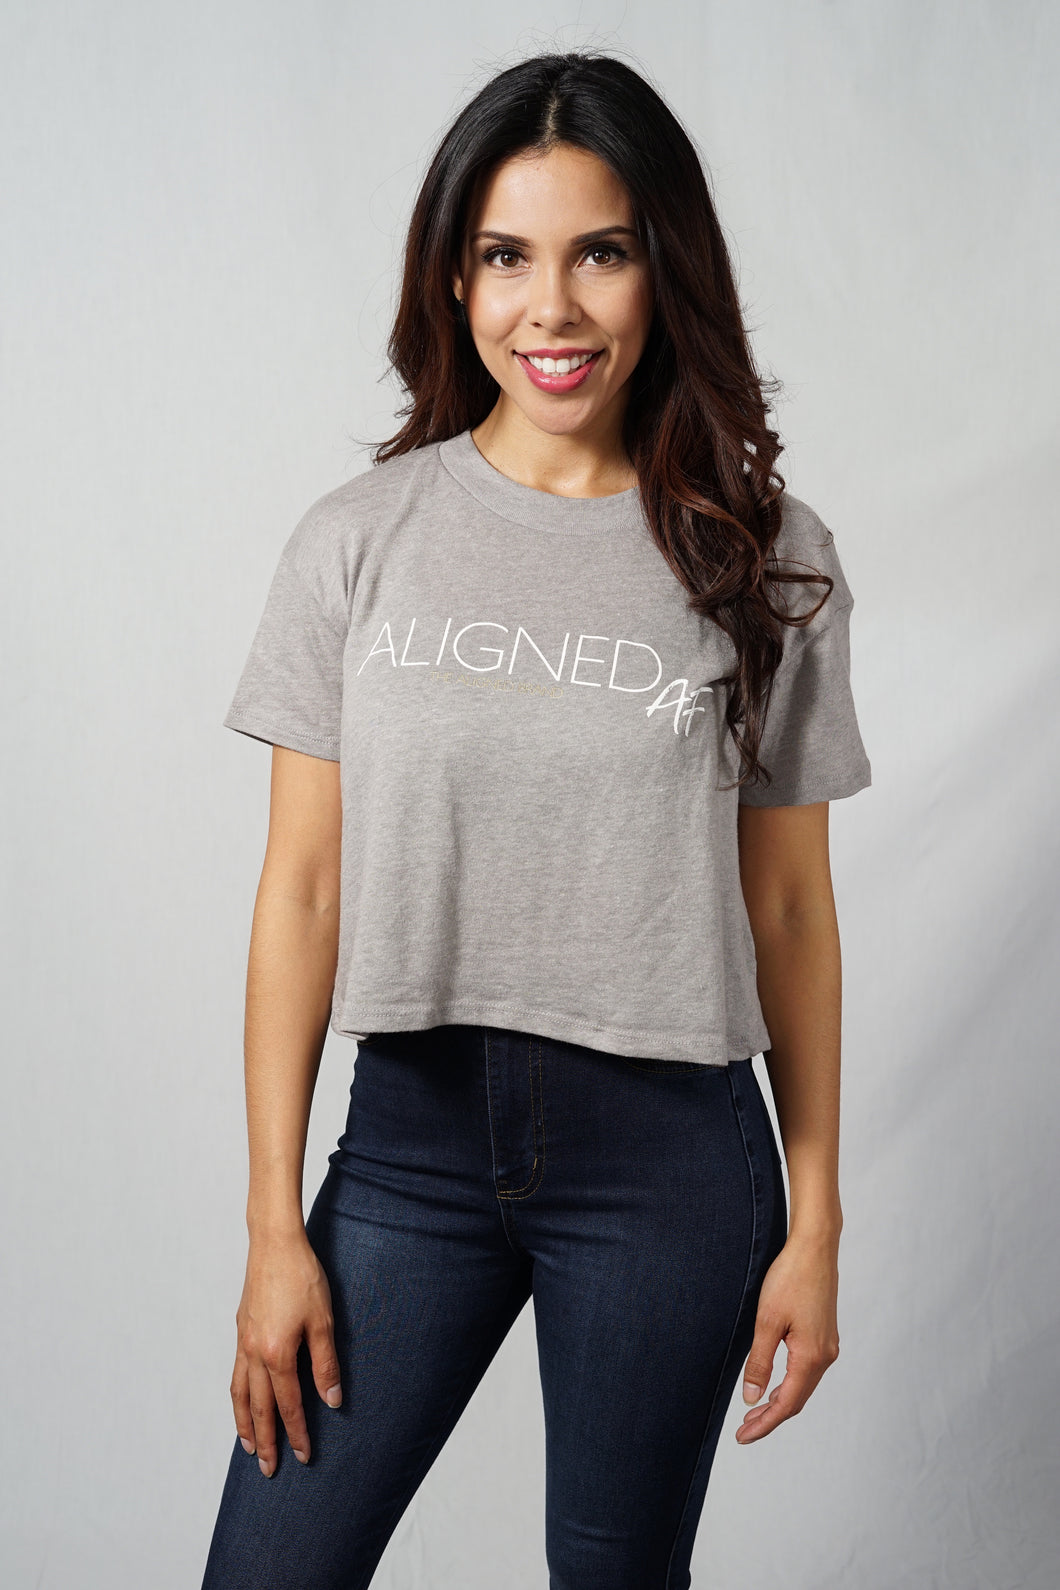 Aligned AF Cropped Tee - The Aligned Brand